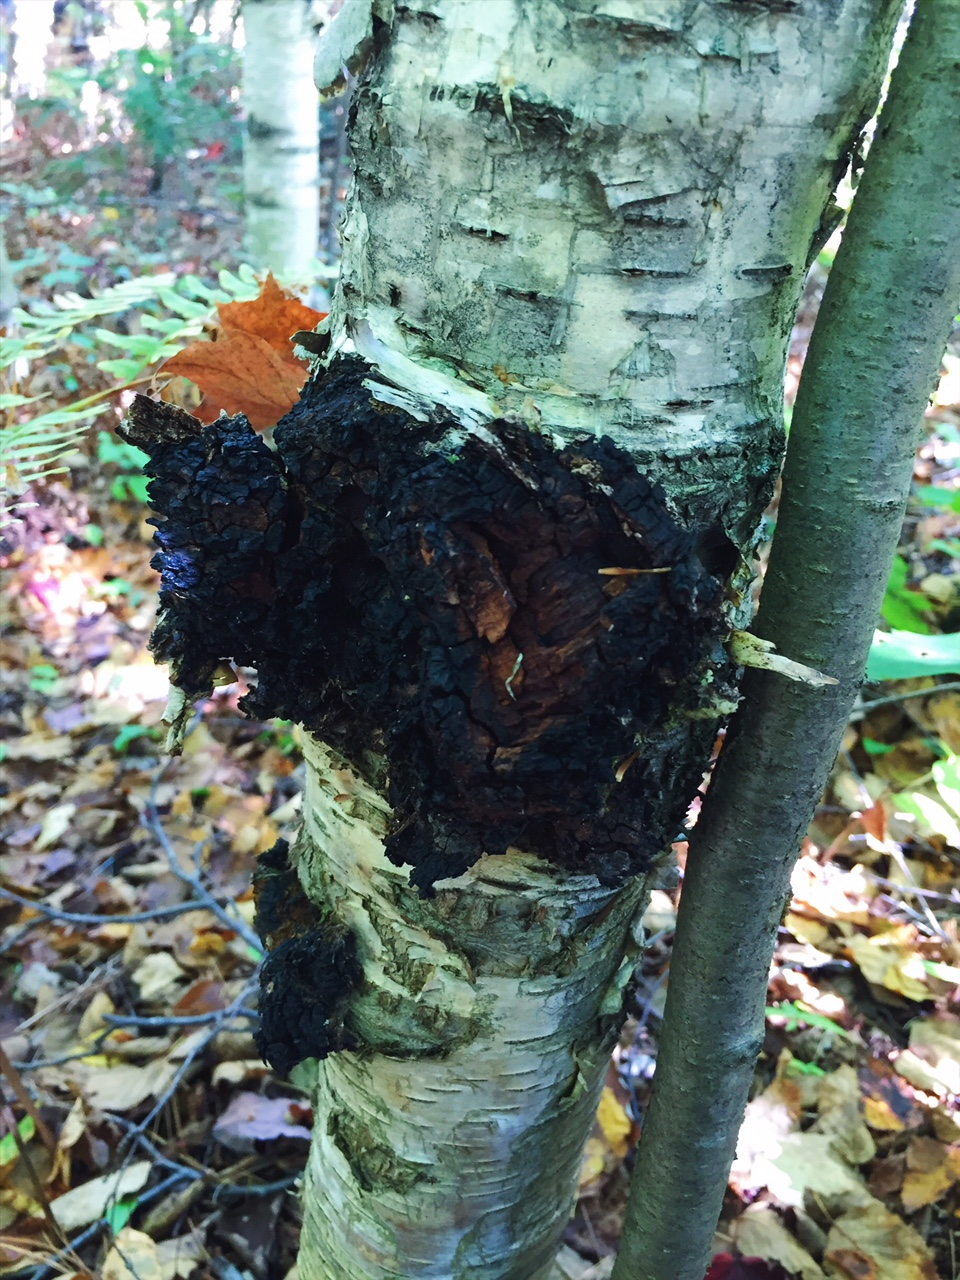 Chaga mushroom growing wild in Northern Ontario, Canada